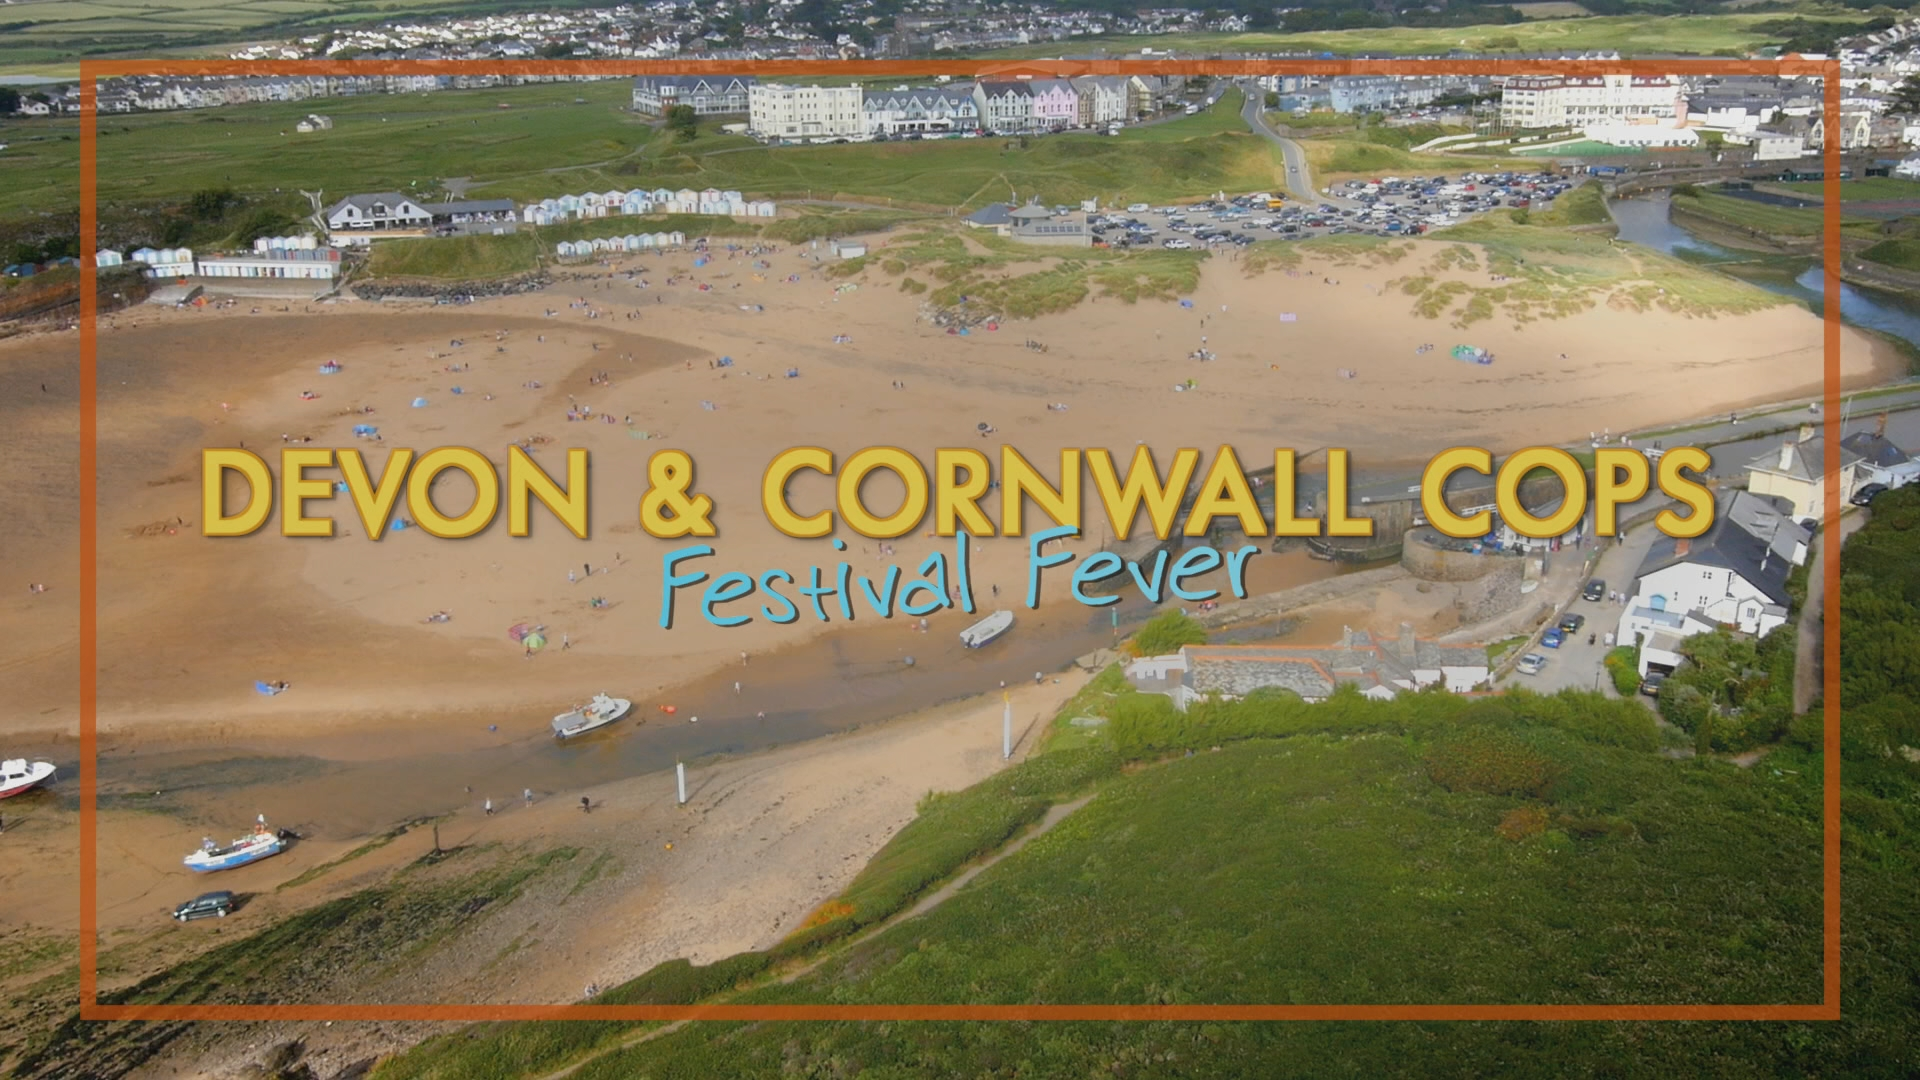 devon and cornwall cops - aeriel shot of beach with logo and episode name